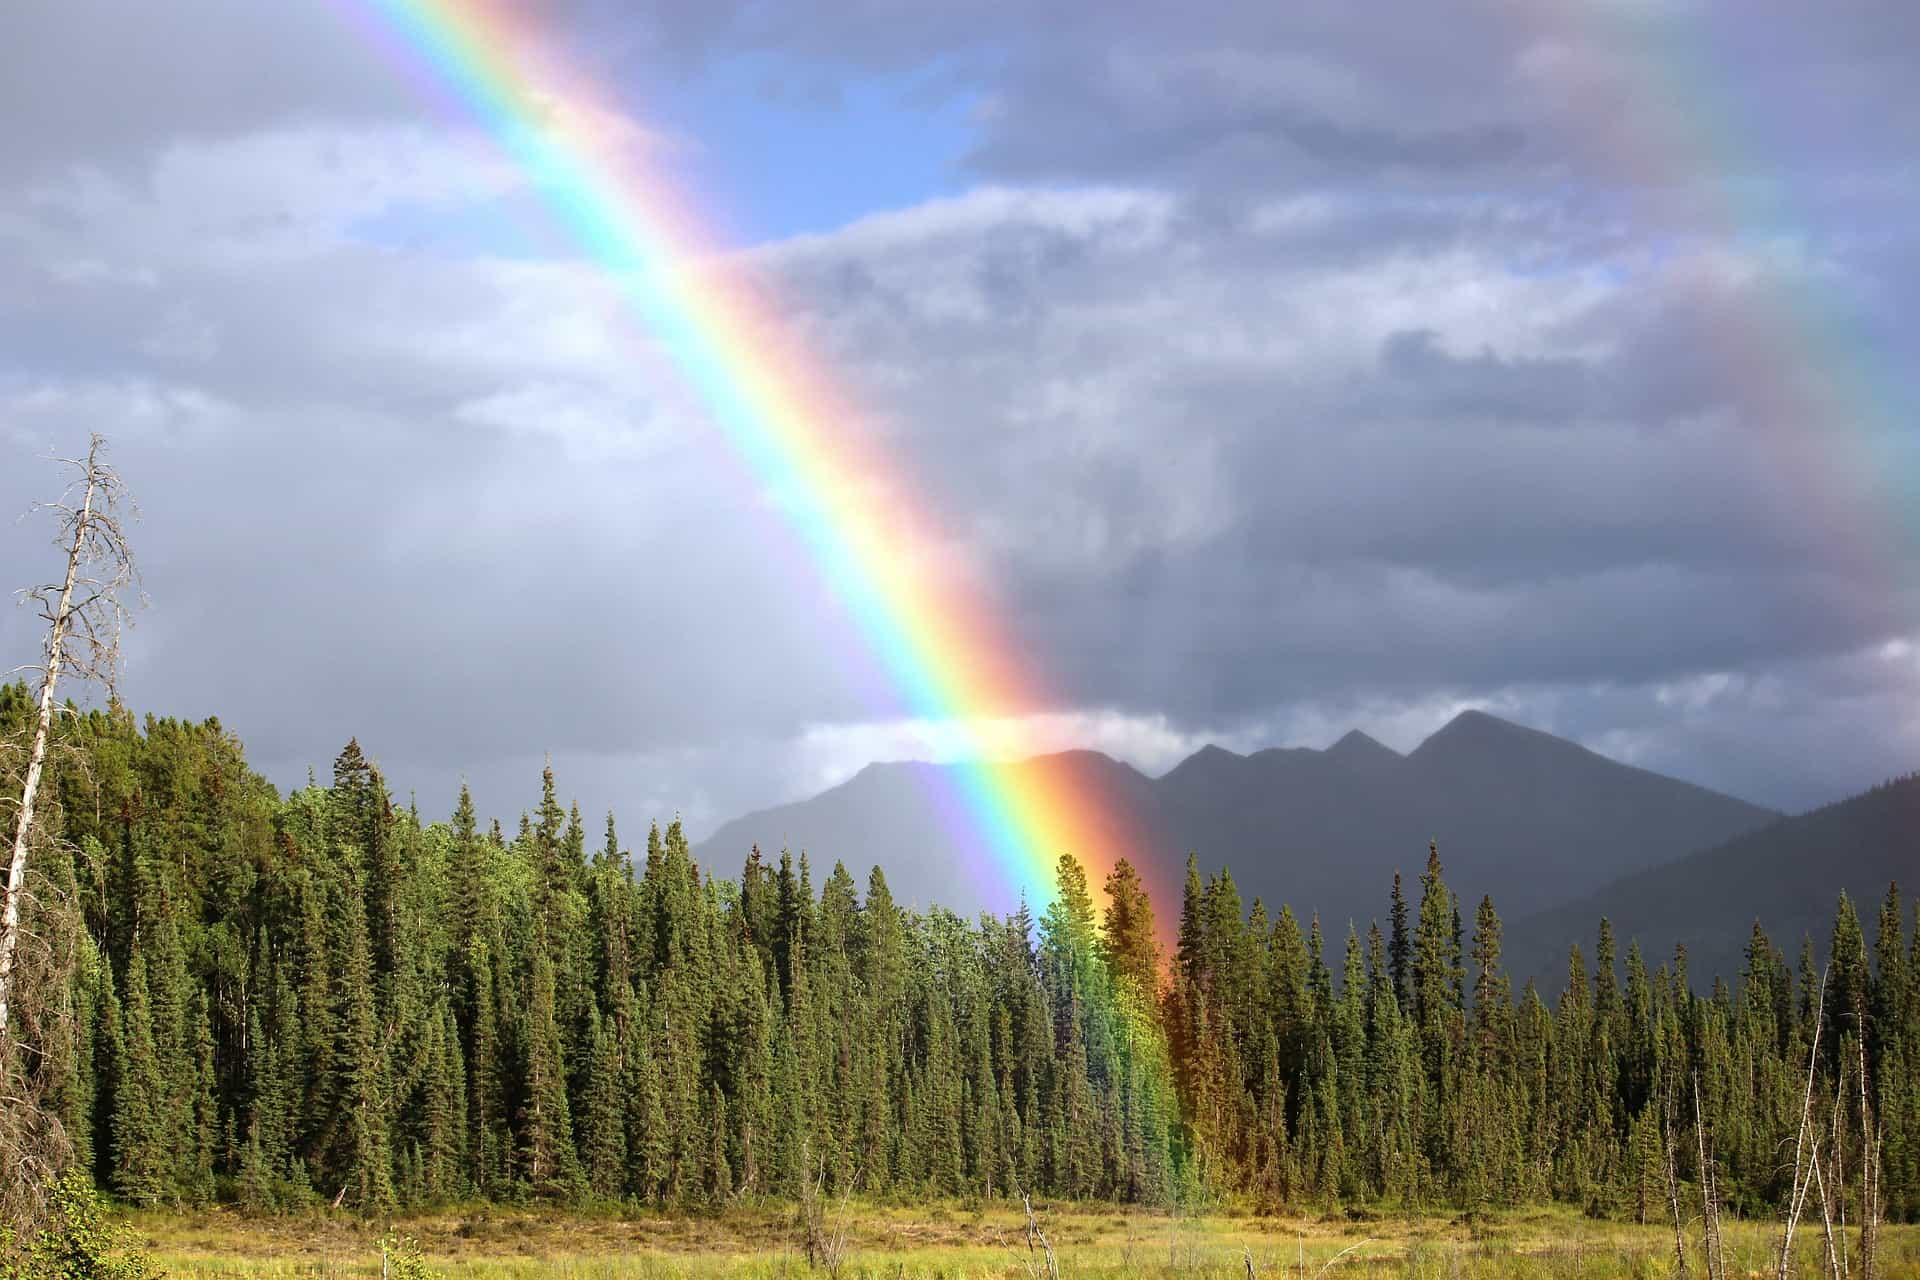 Amazing Fun Facts About The Rainbow We Often Witness